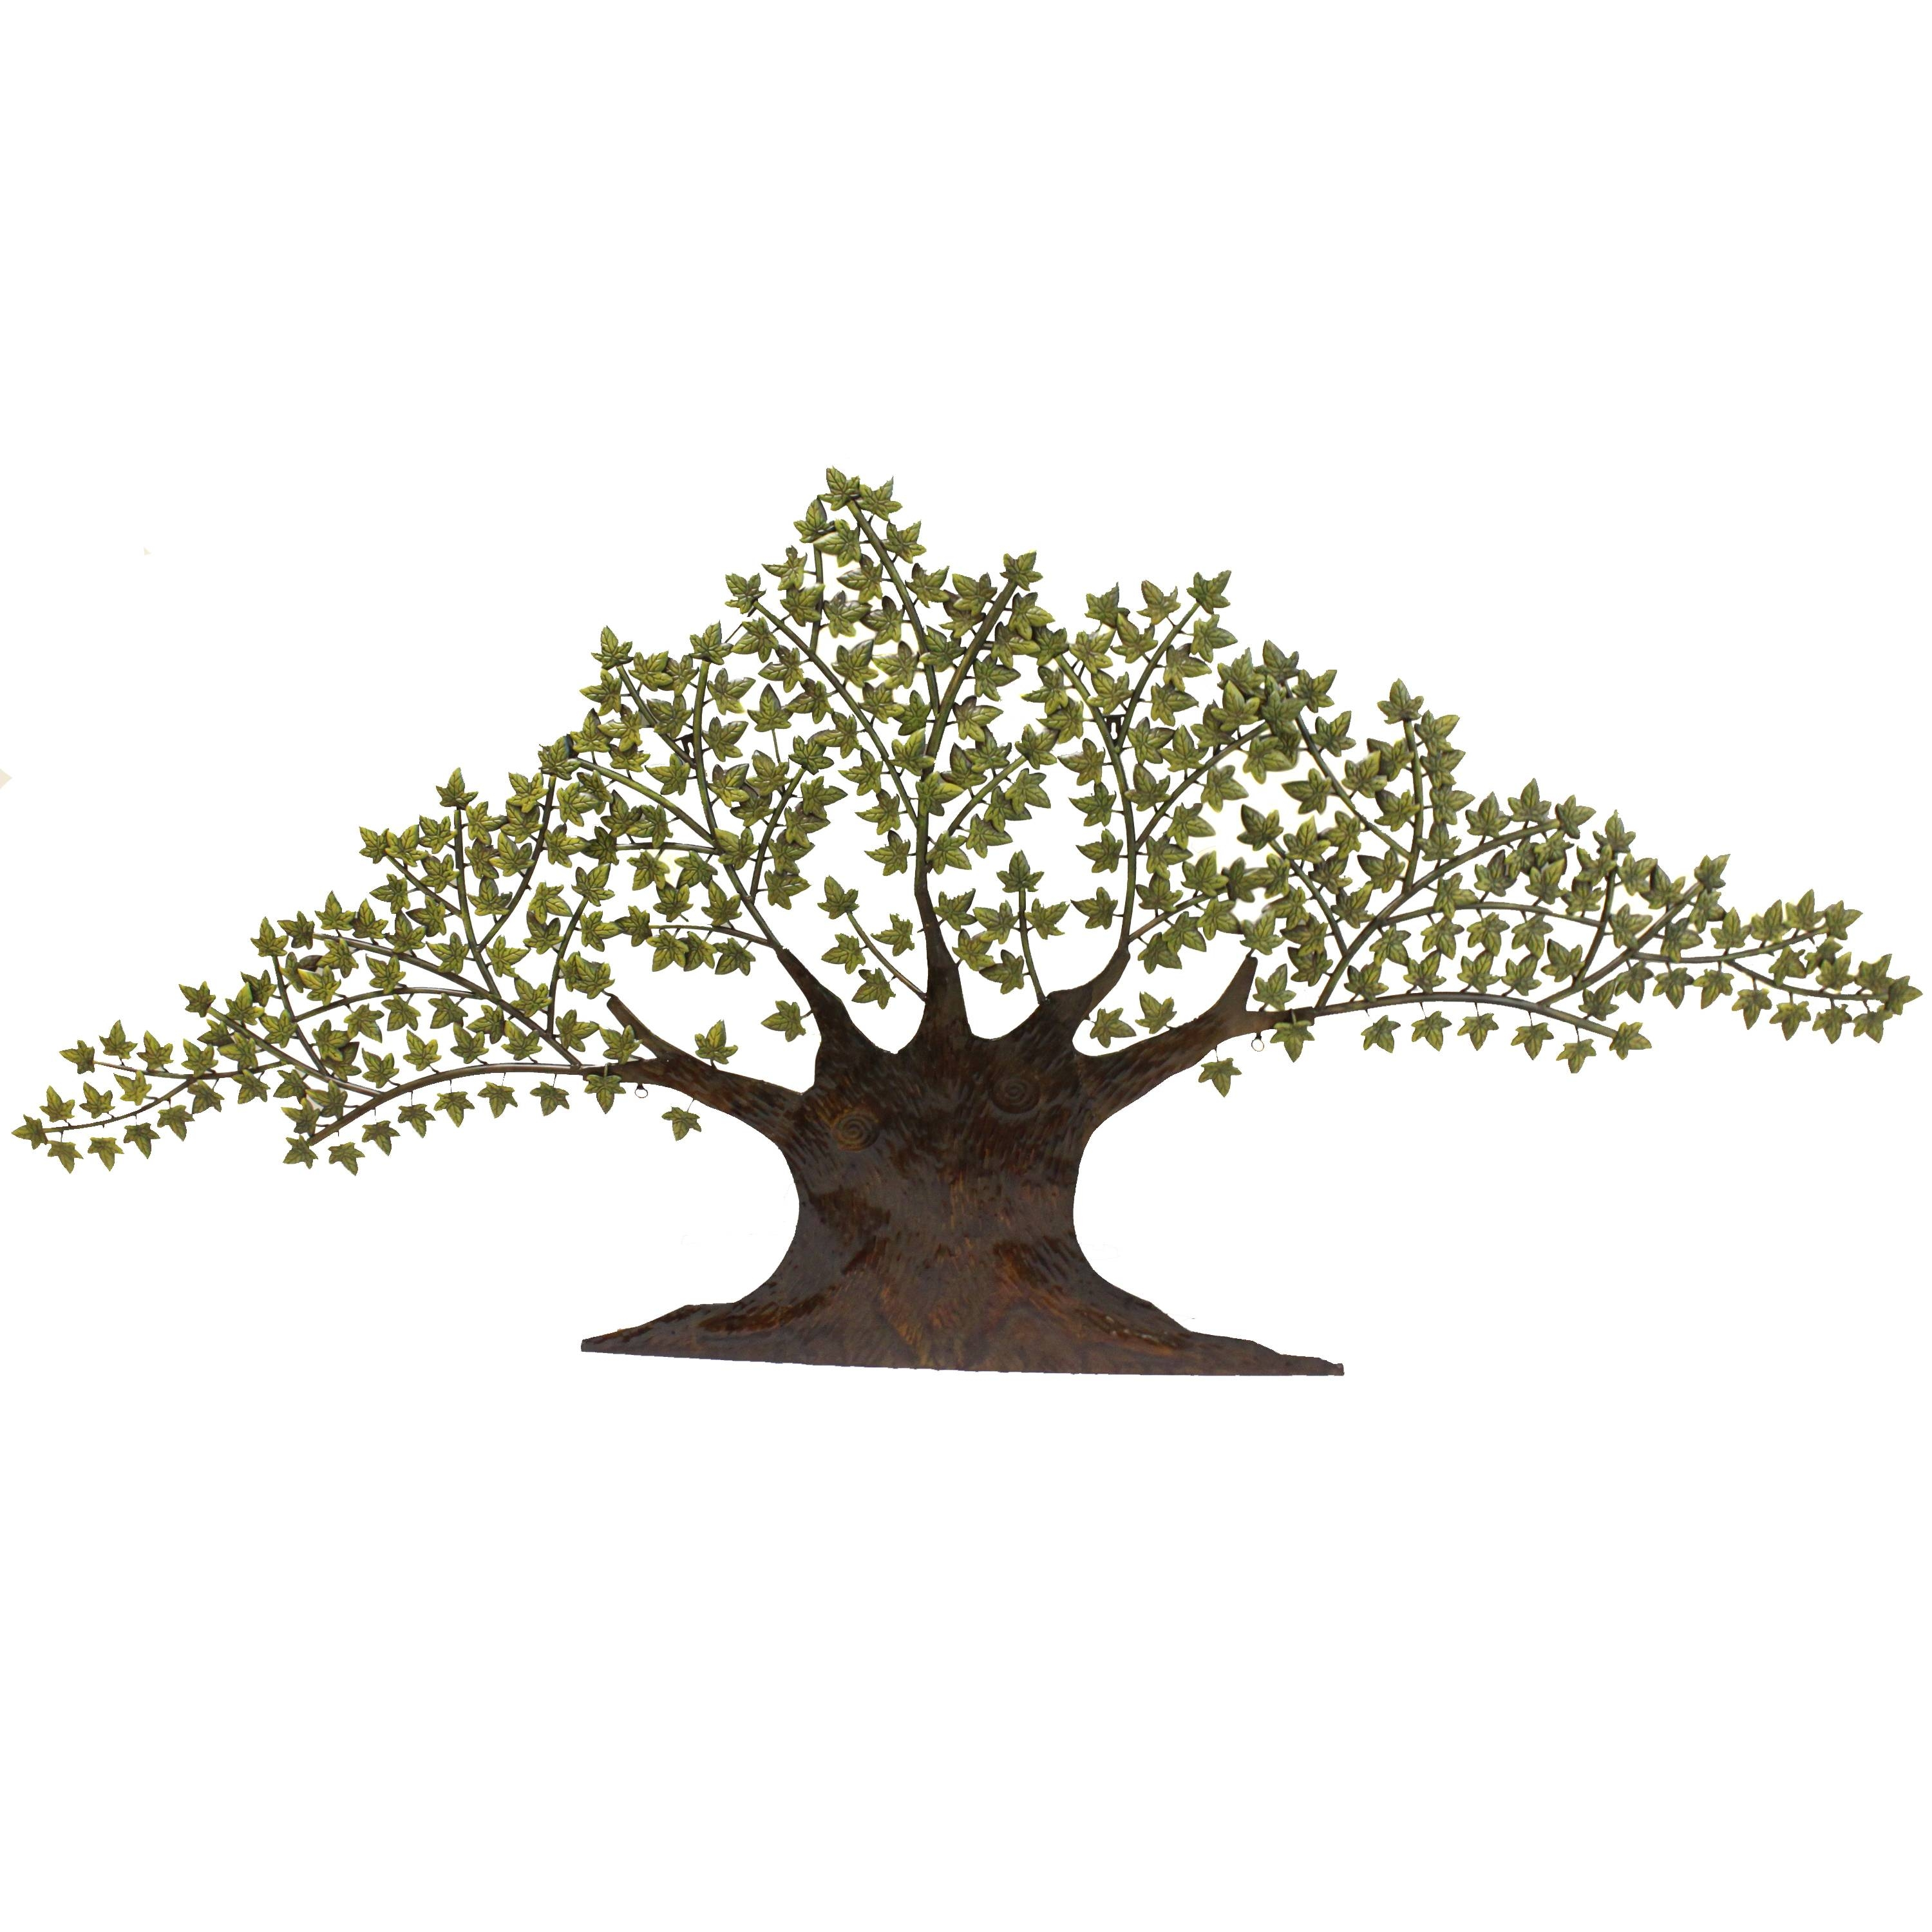 Grotesque Tree Of Life Metal Wall Art Decor Sculpture With Green With Most Recent Metal Wall Art Trees And Leaves (Gallery 7 of 20)